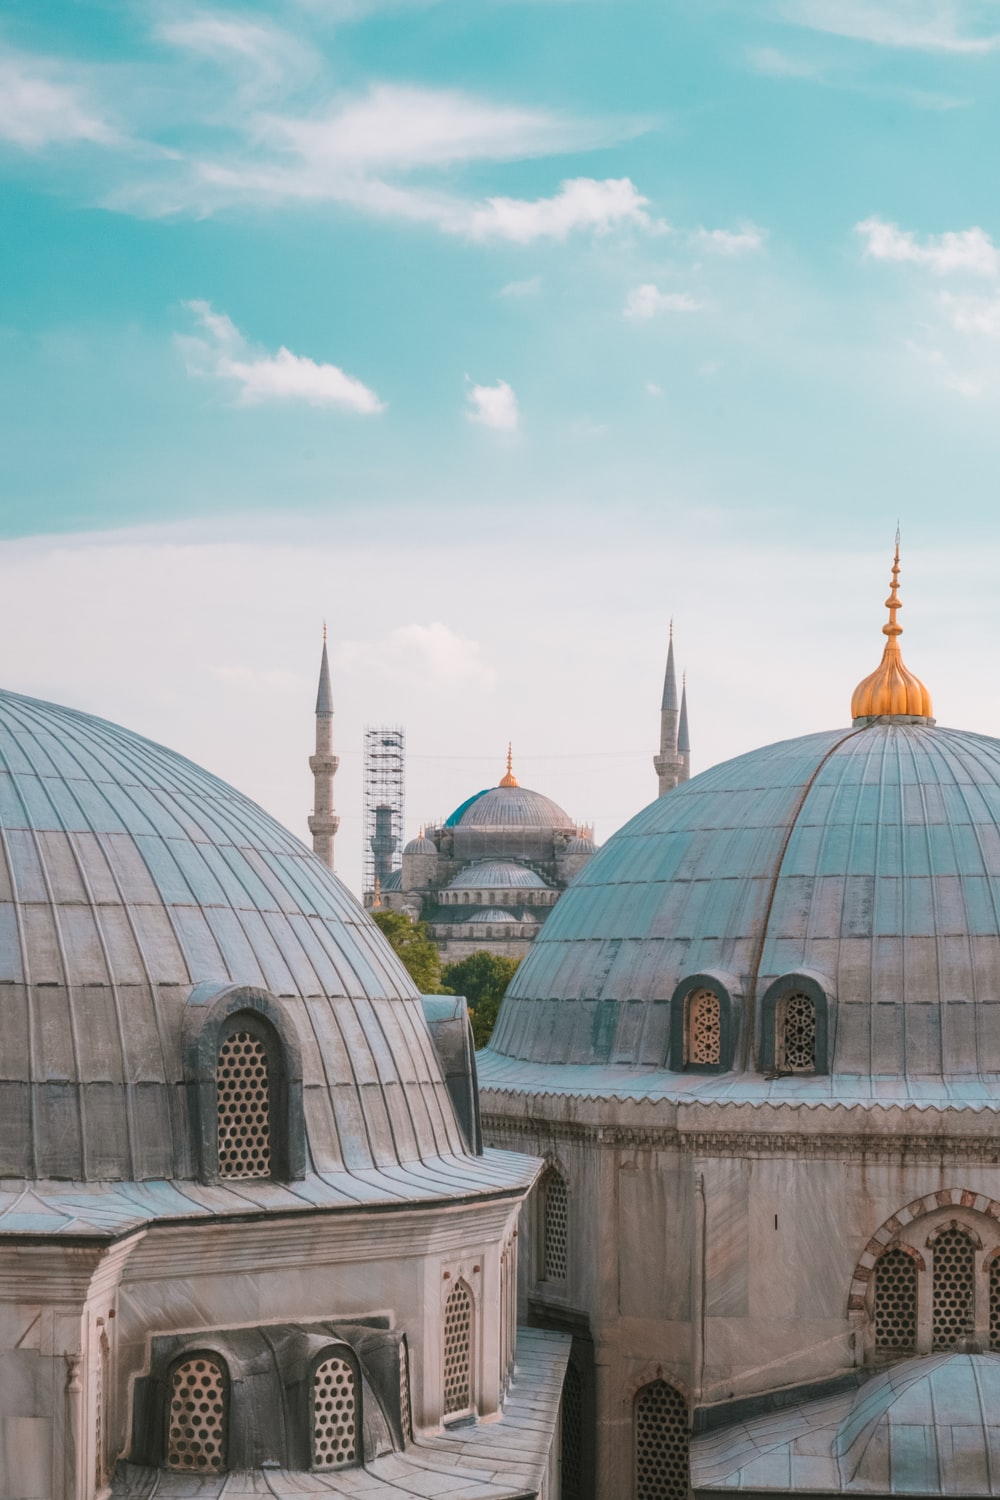 blue domed mosque through mosques during daytime